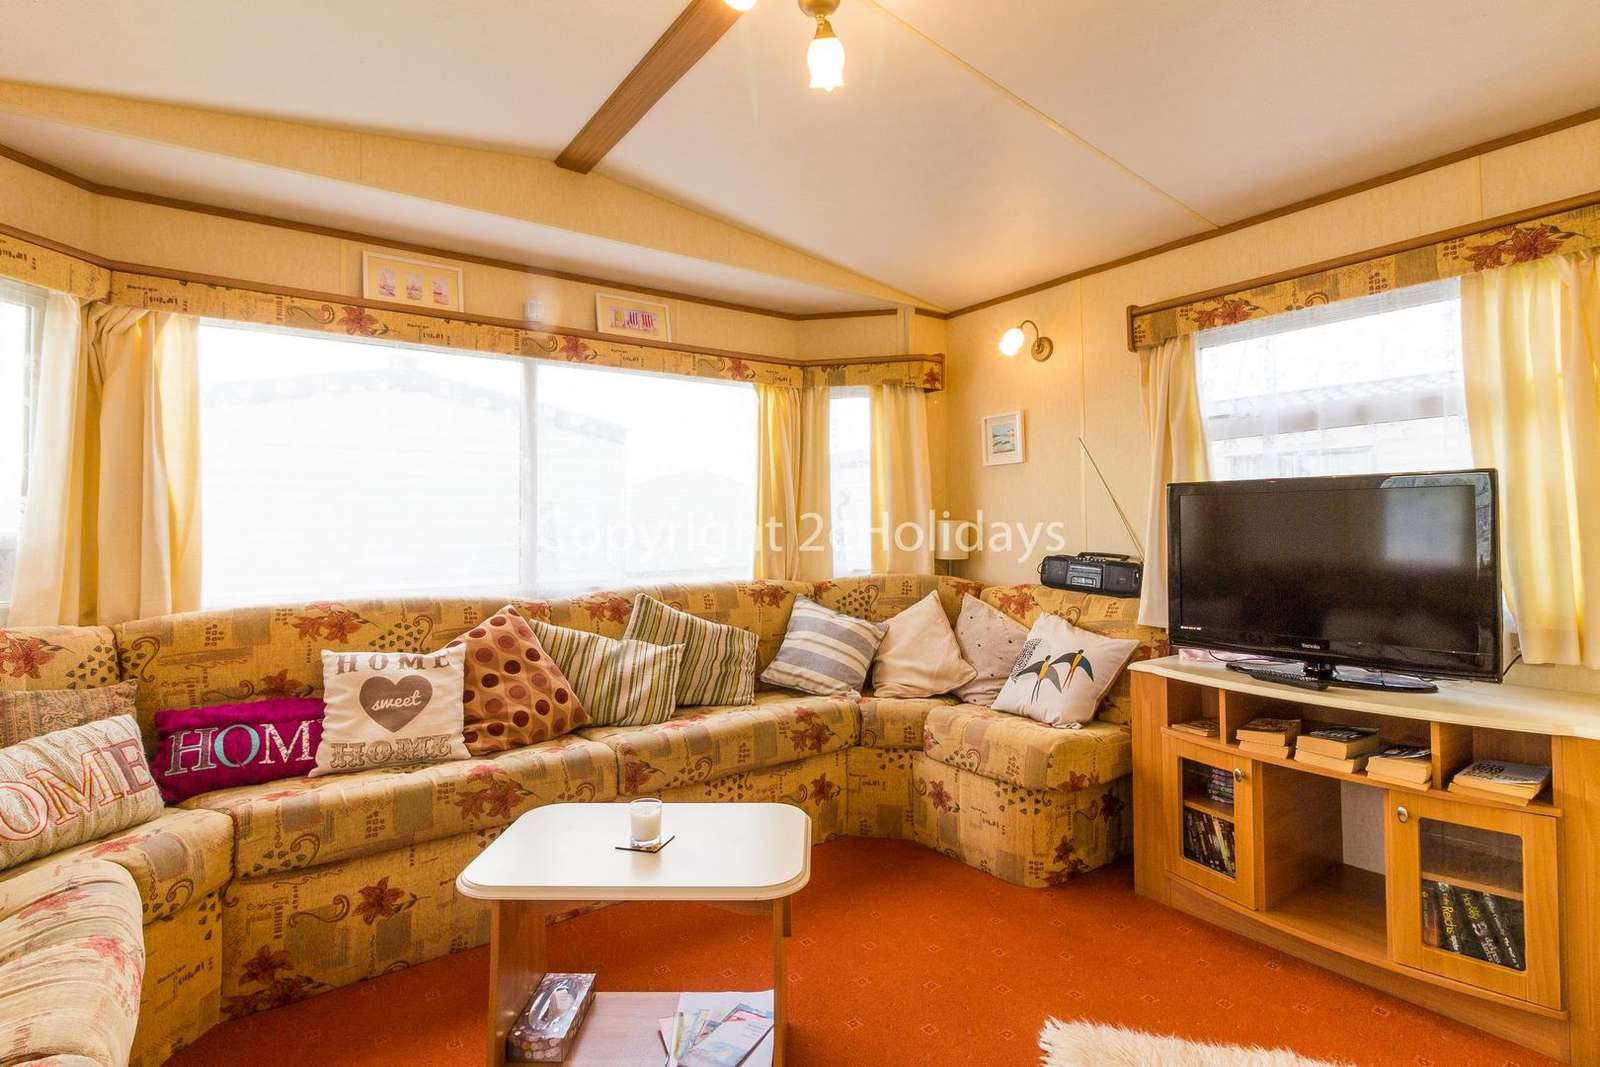 Such a cosy living area with a TV!